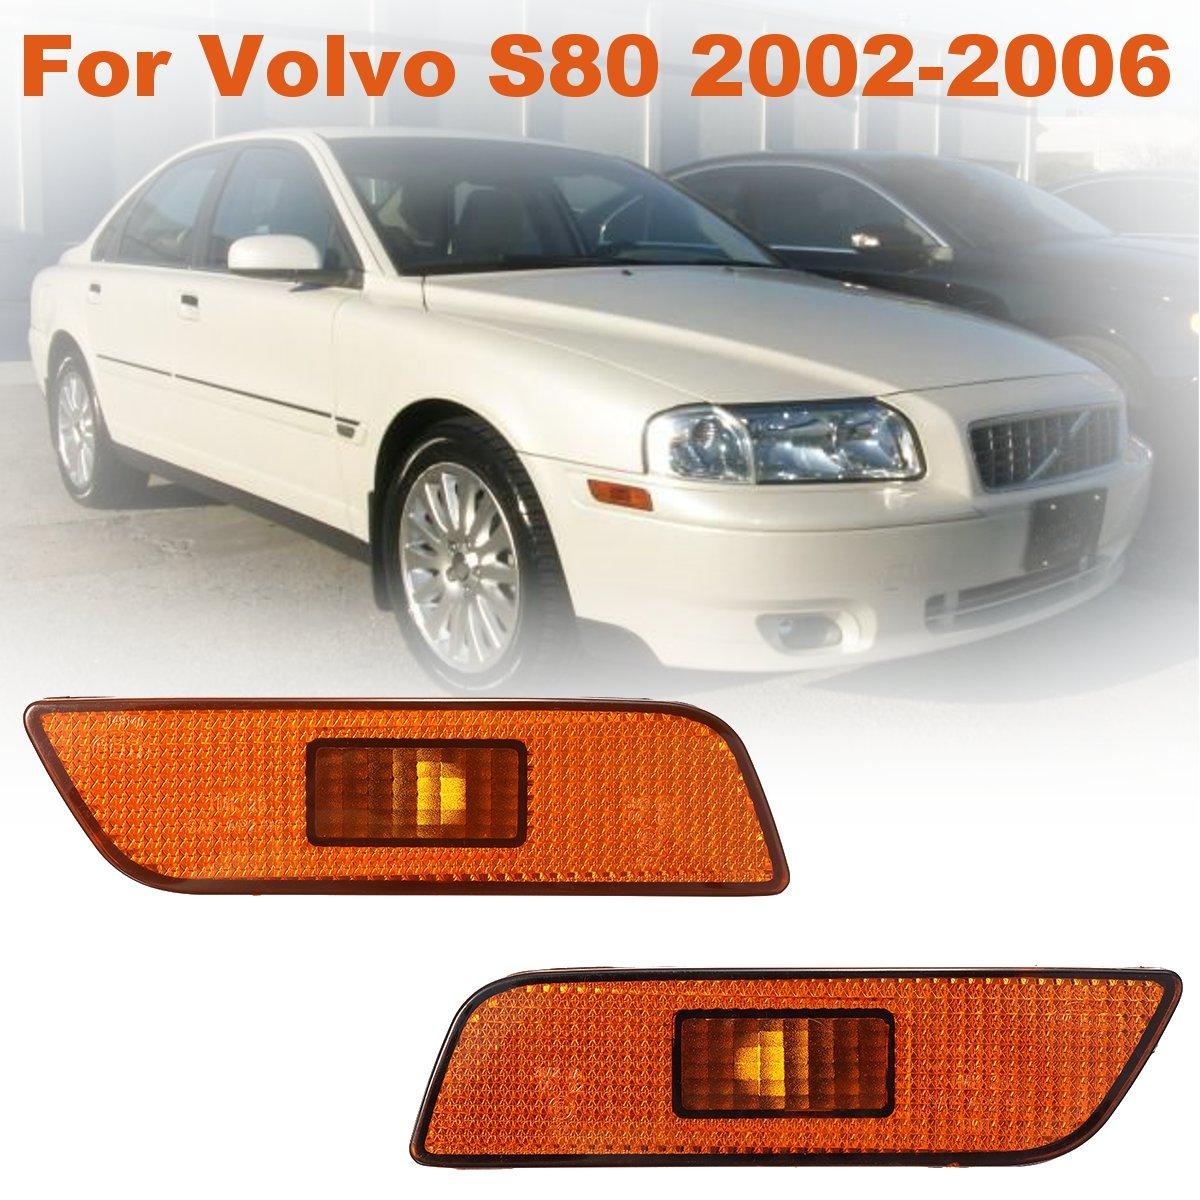 #30744360 #30744361 Pair PMMA Front Left Right Side Marker Lamps Lights For Volvo S80 2002 2003 2004 2005 2006 actuator for k04 53049880028 077145703p 077145703pv turbo turbochager for audi rs6 c5 left side 2002 2004 year 450hp bcy biturbo